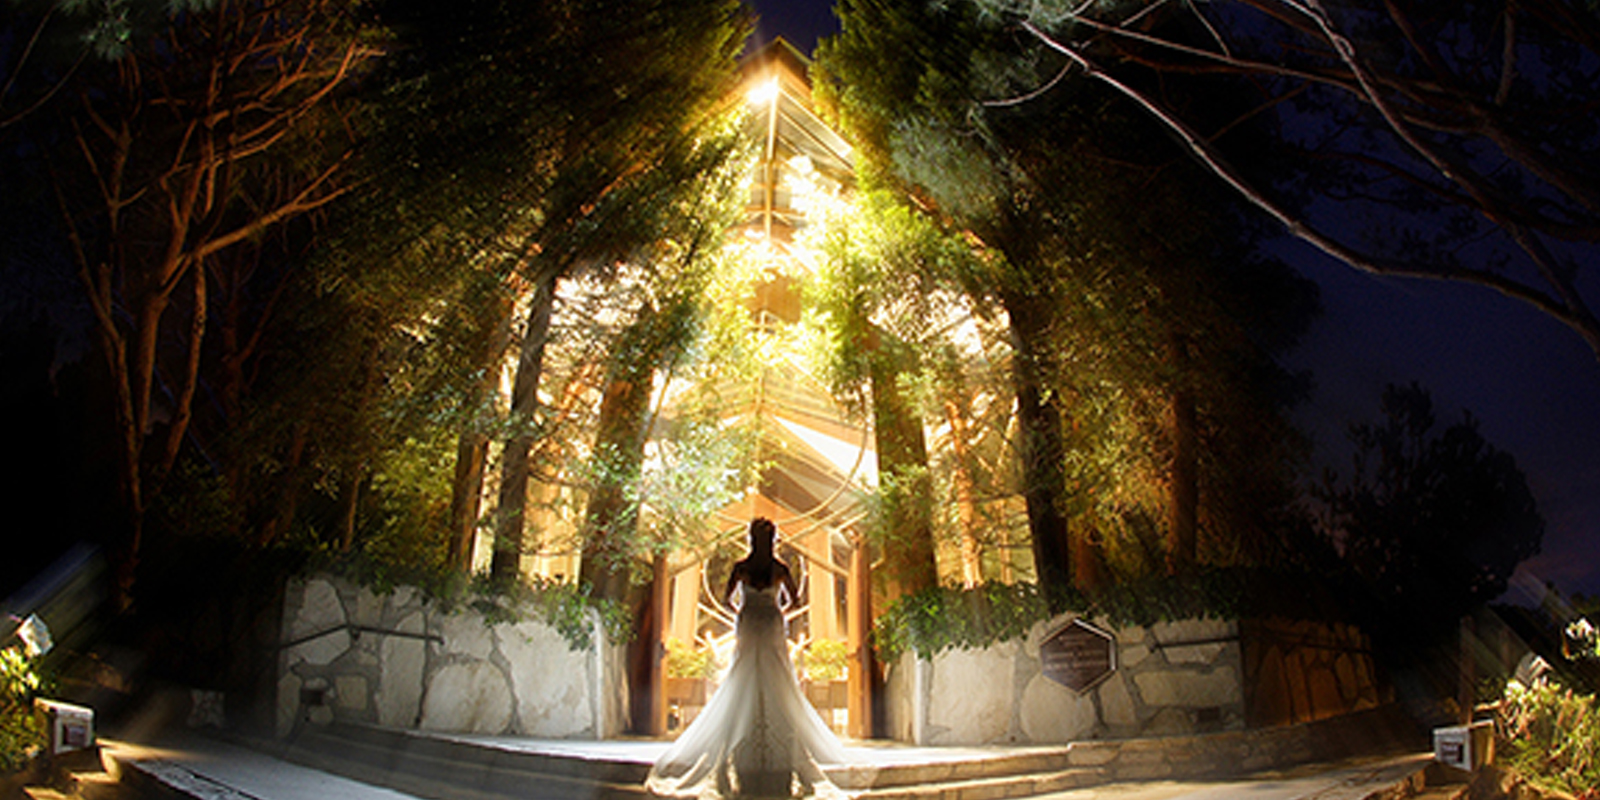 A photo of a bride standing in the doorway of the chapel at night